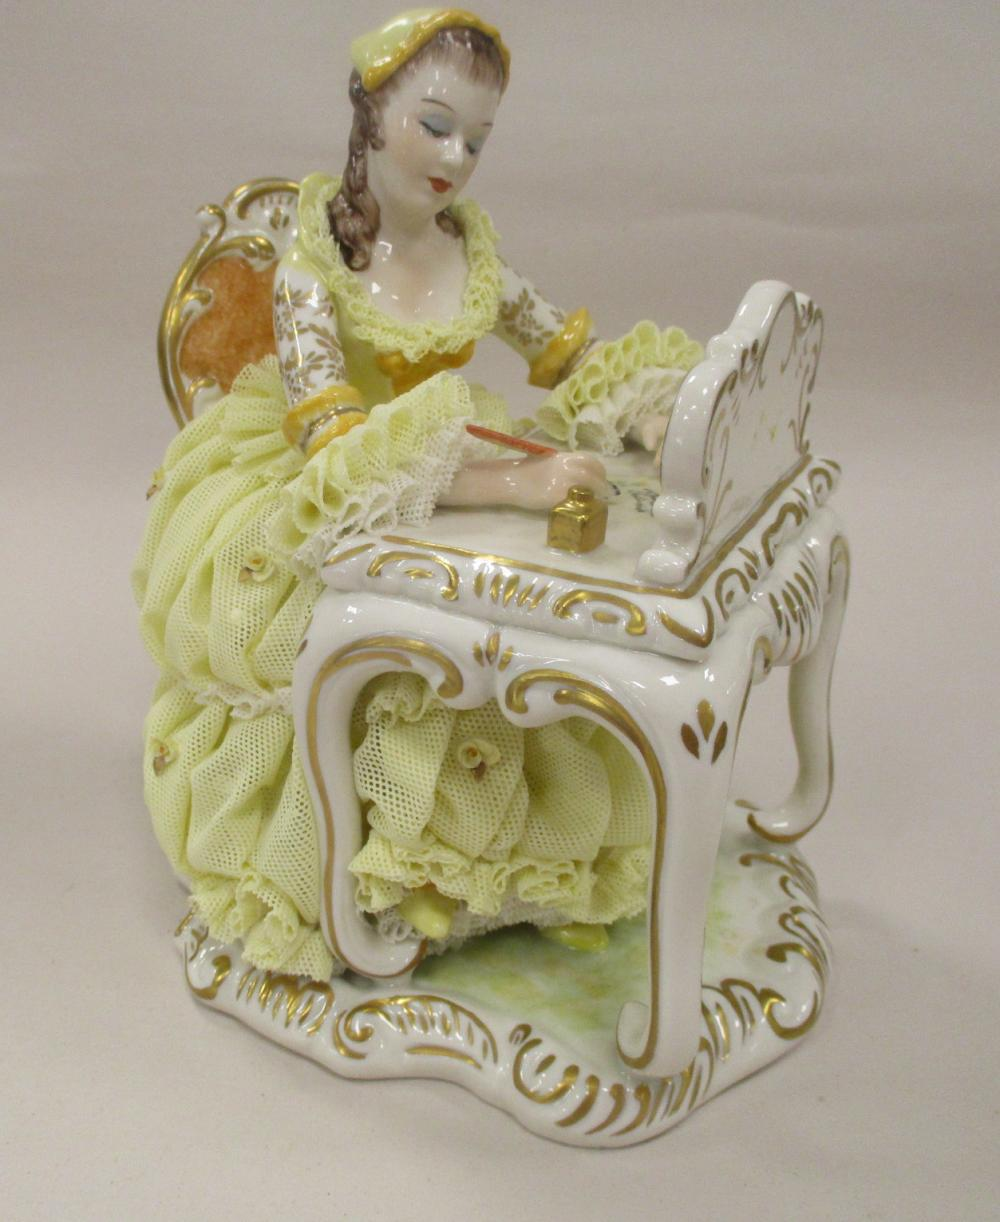 """IRISH DRESDEN FIGURE """"THE LOVE LETTER"""", SUNSHINE COLLECTION. DEPICTS A WOMAN WRITING A LETTER AT A DESK. 7"""" TALL"""